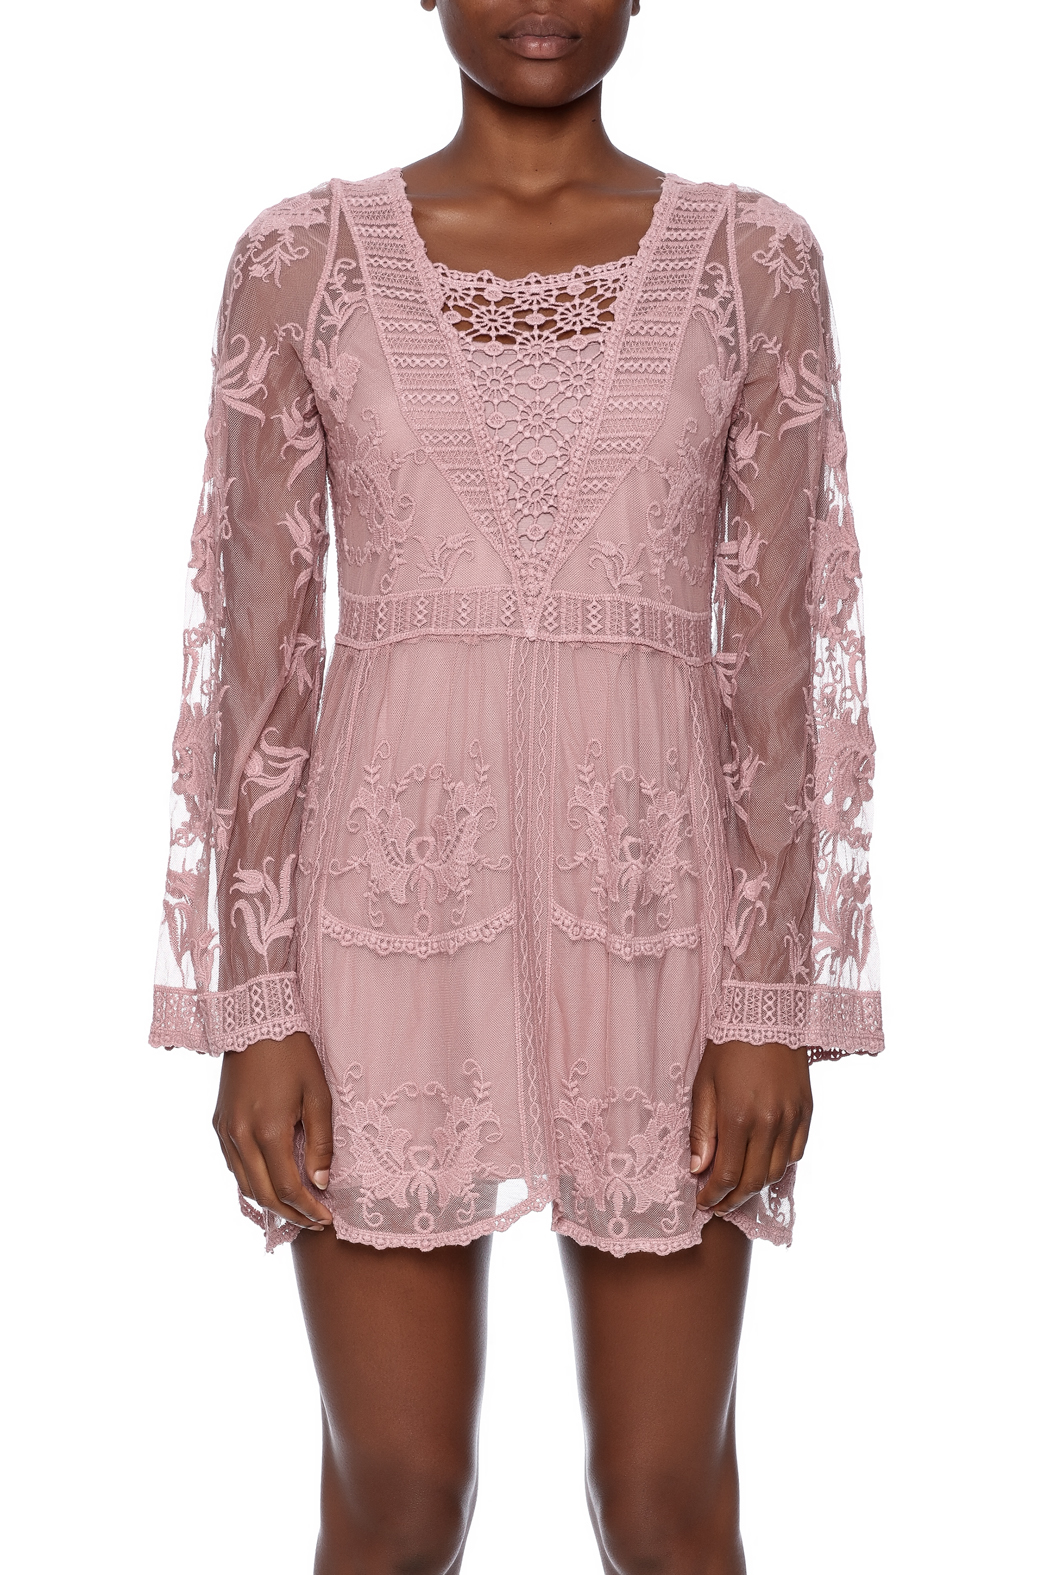 39abadf53dc177 Mono Reno Mauve Lace Tunic from Pittsburgh by The Vintage Valet ...